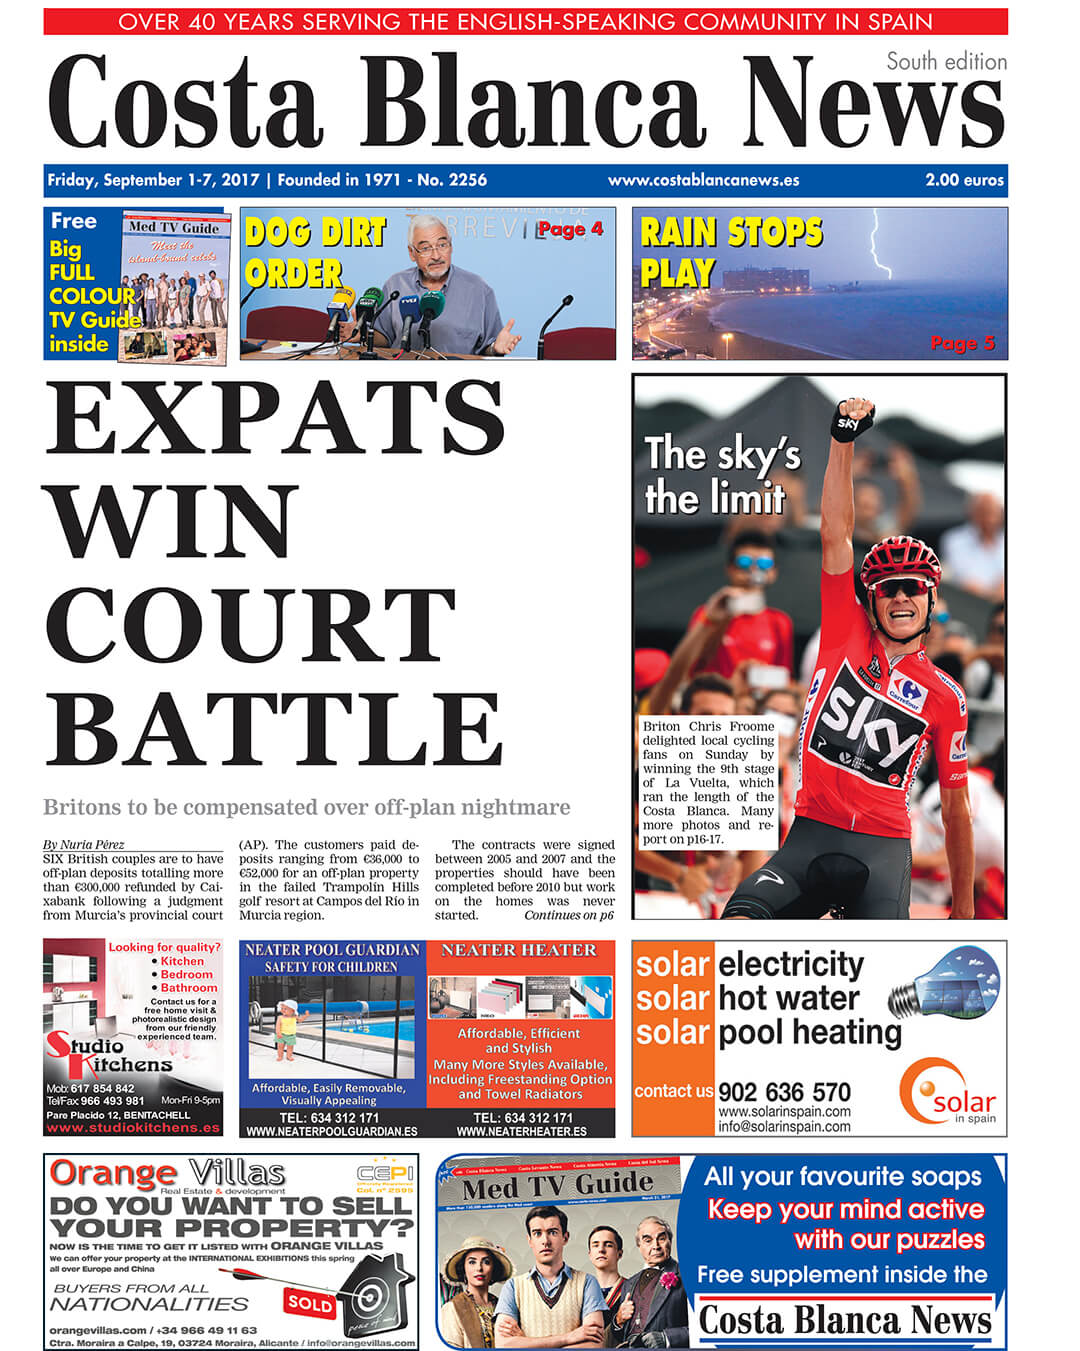 Expats Win Court Battle